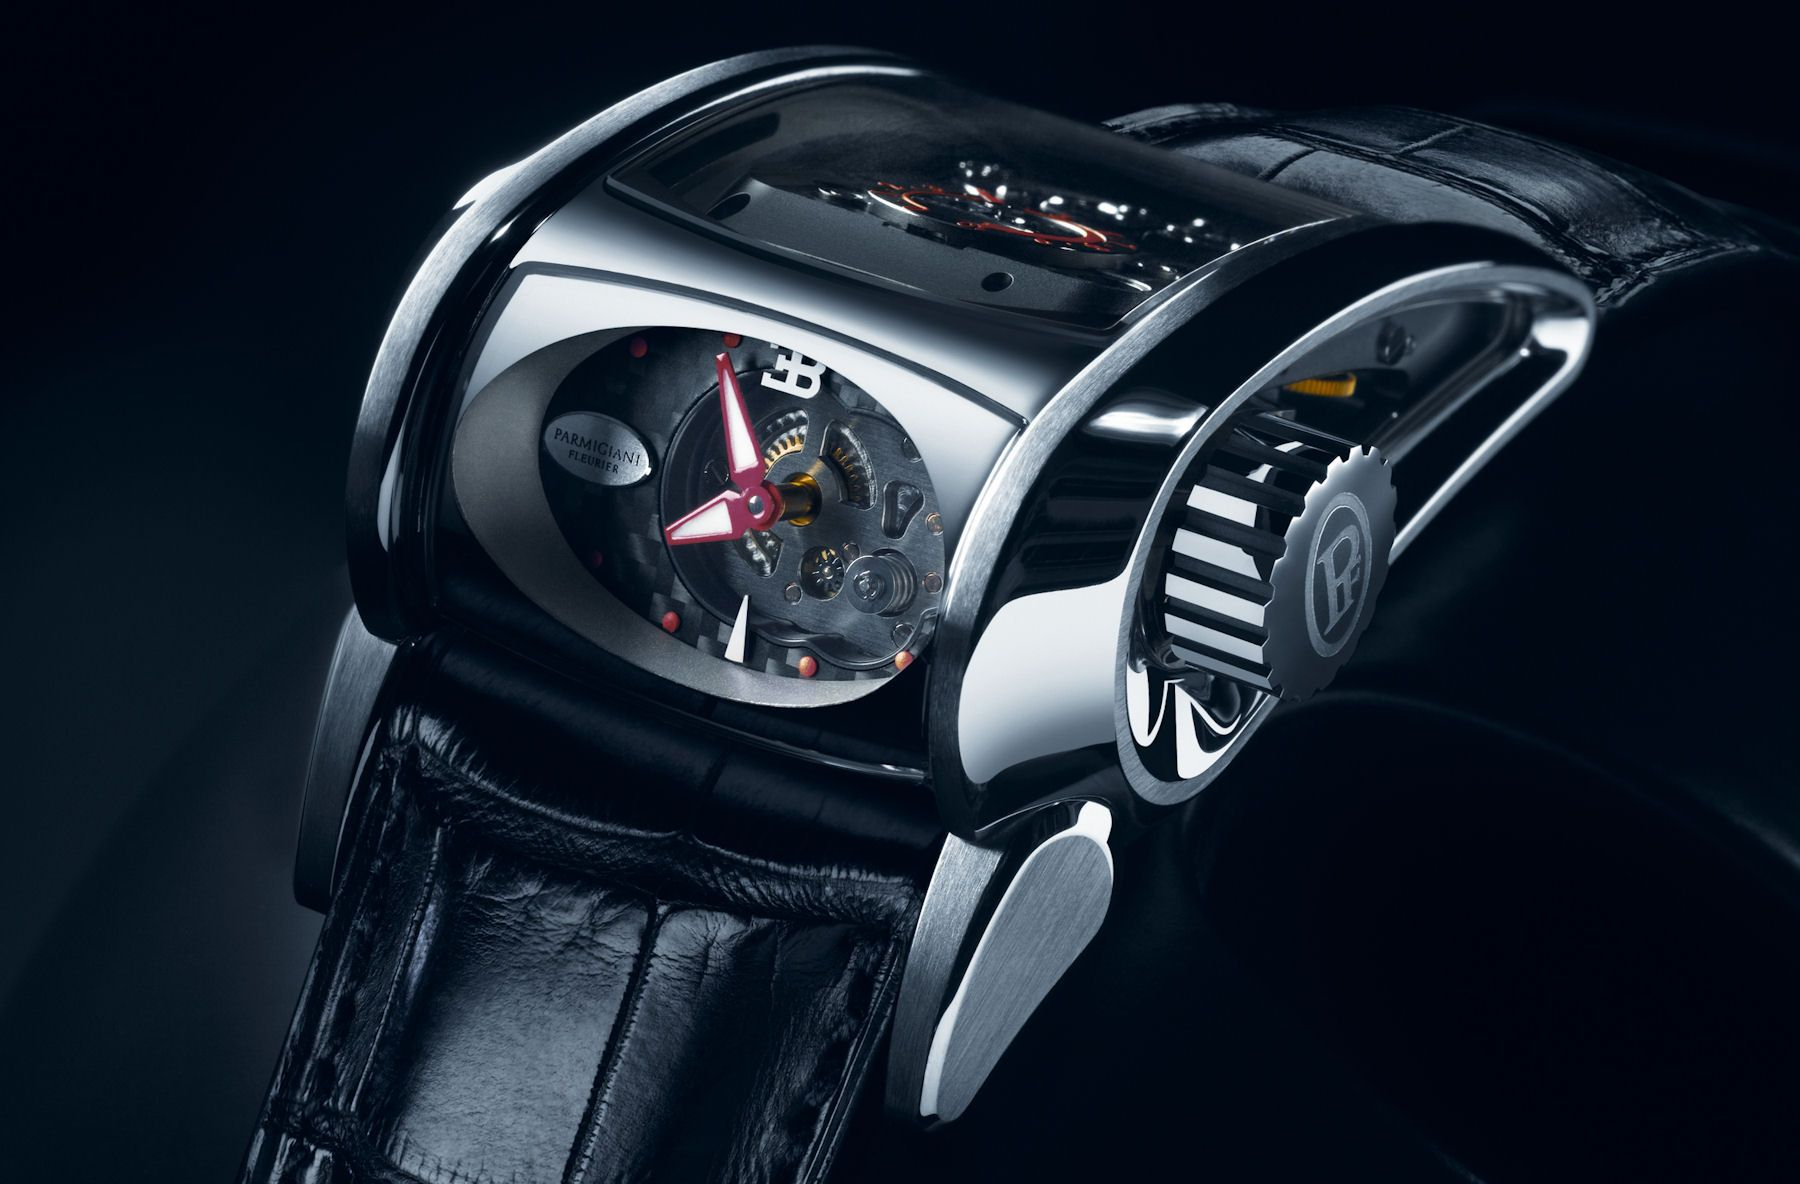 4 Luxe Watches Inspired by Fast Cars Luxury watches